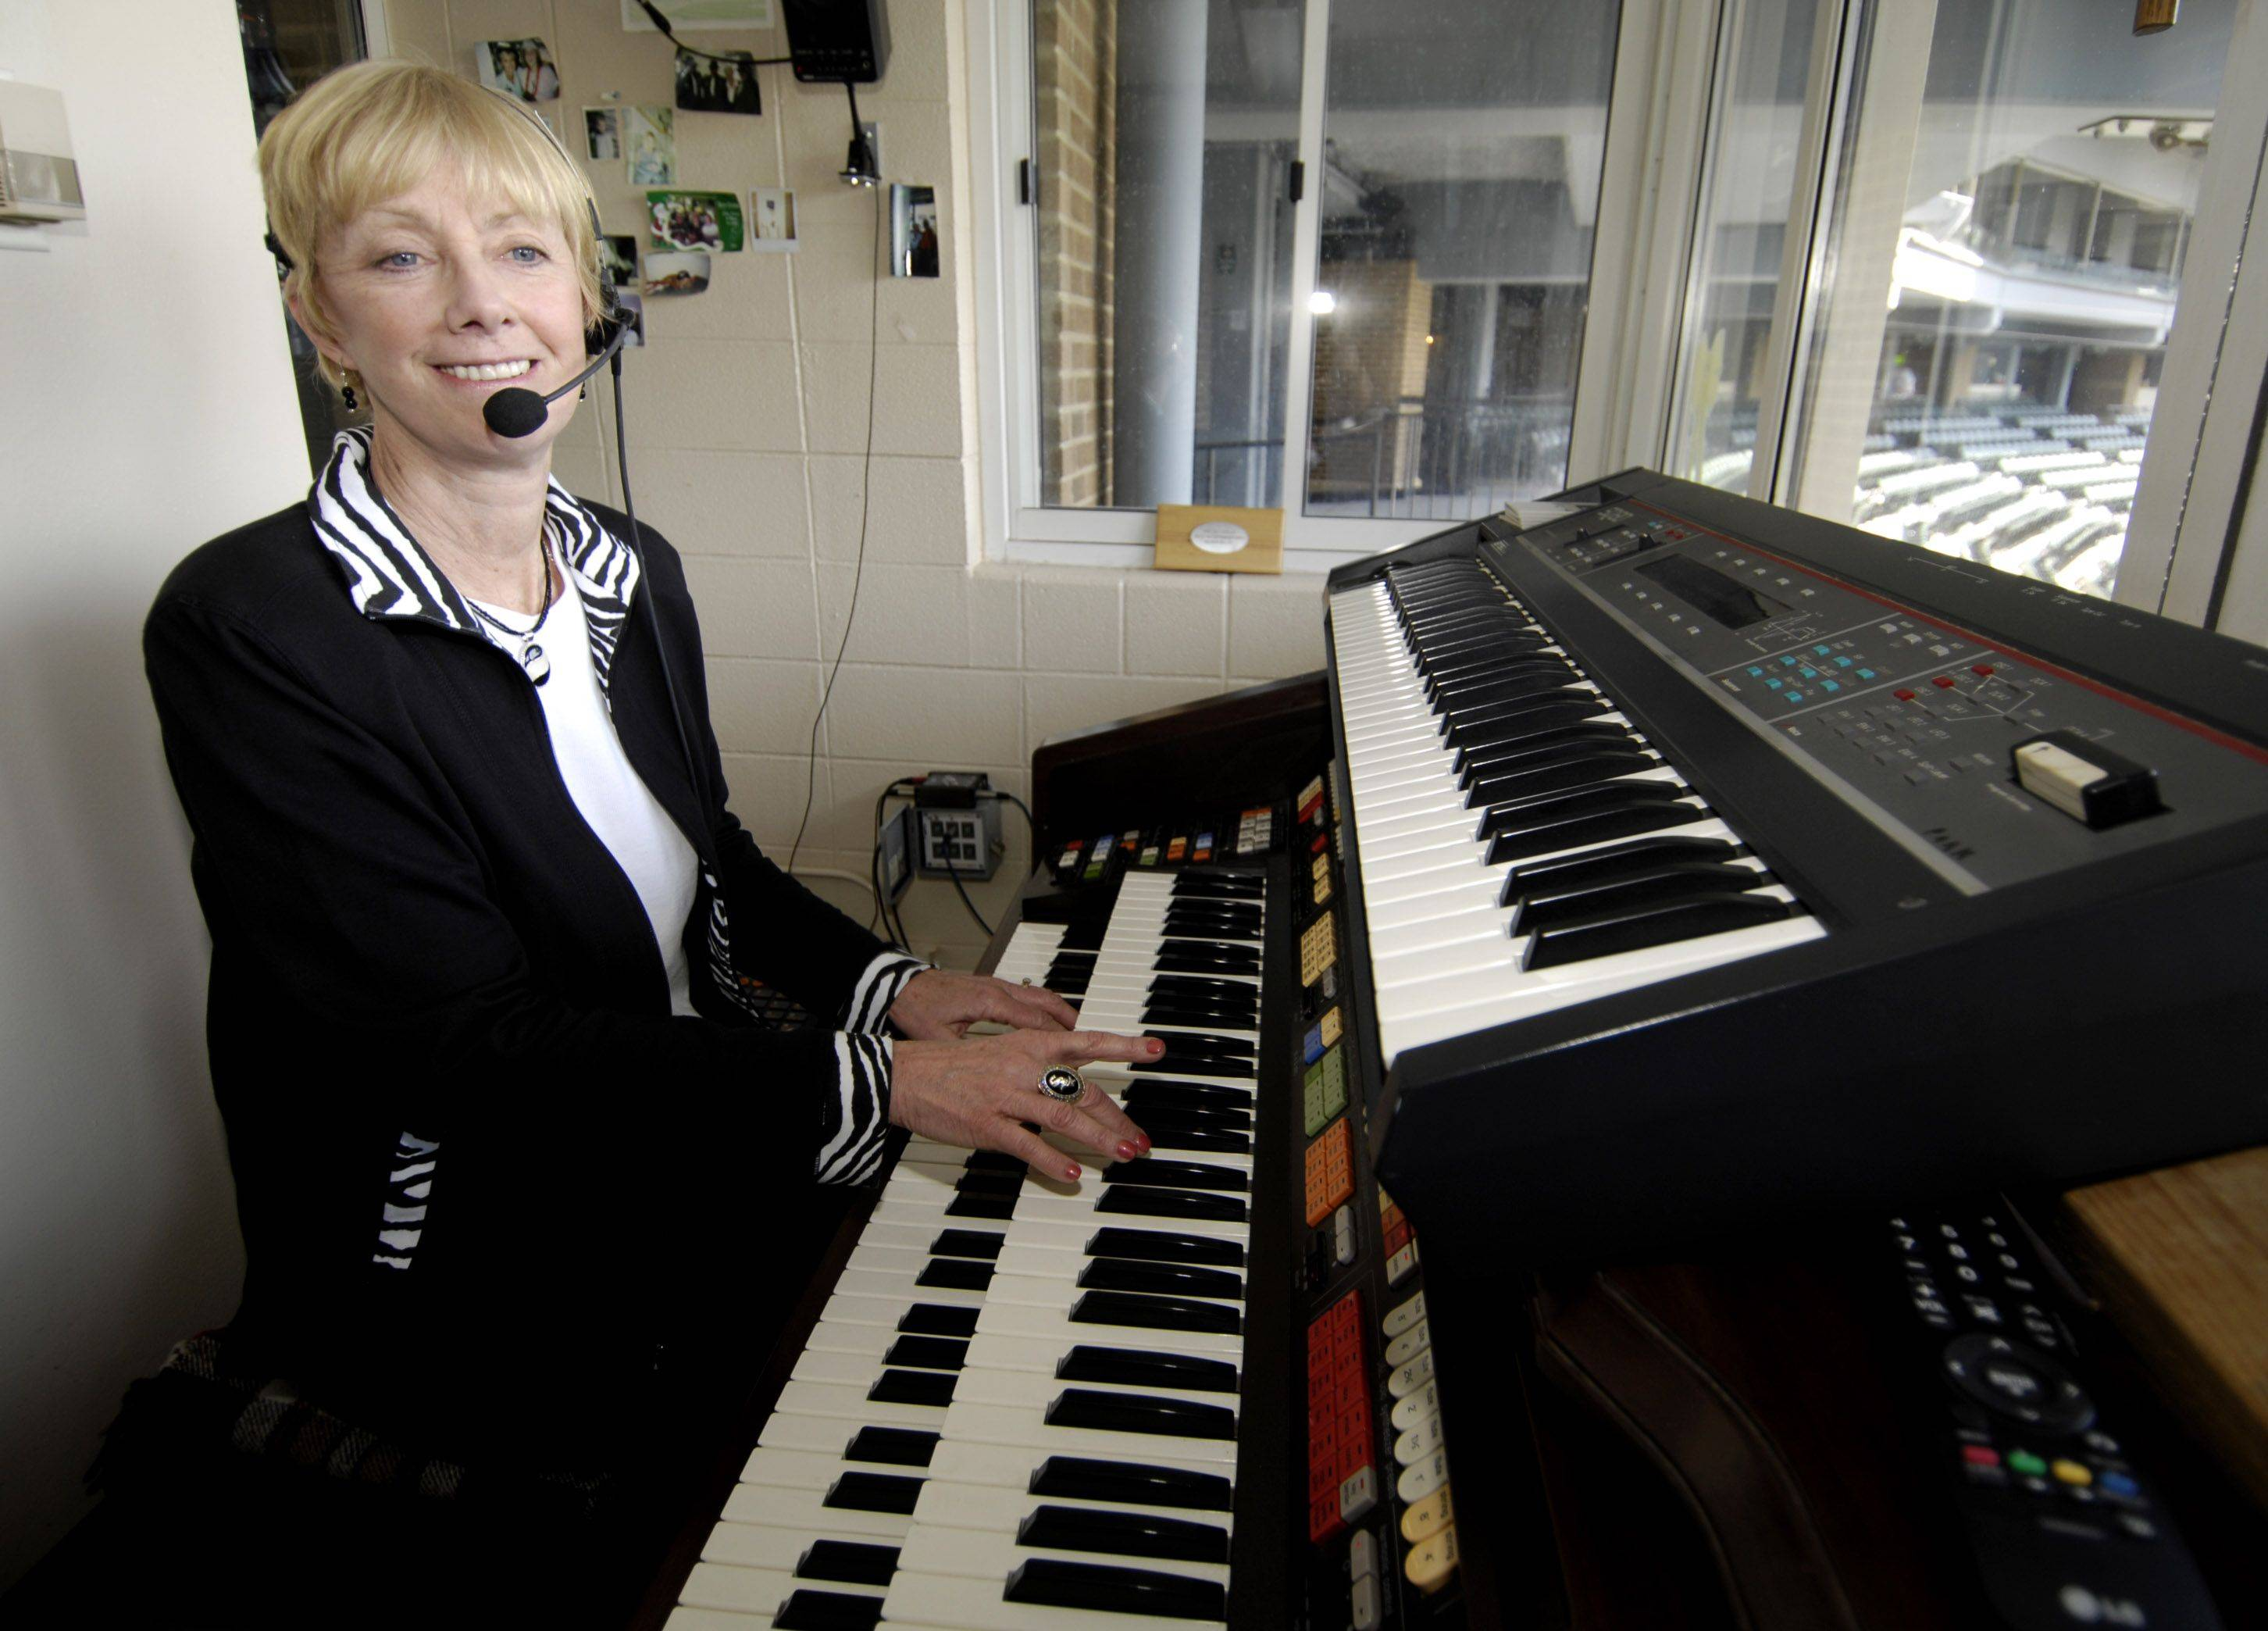 At last season's home opener, Nancy Faust of Mundelein was at home as the organist for the Chicago White Sox. Today, for the first time in 42 years, the retired Faust will watch the opener from her home in rural Mundelein.